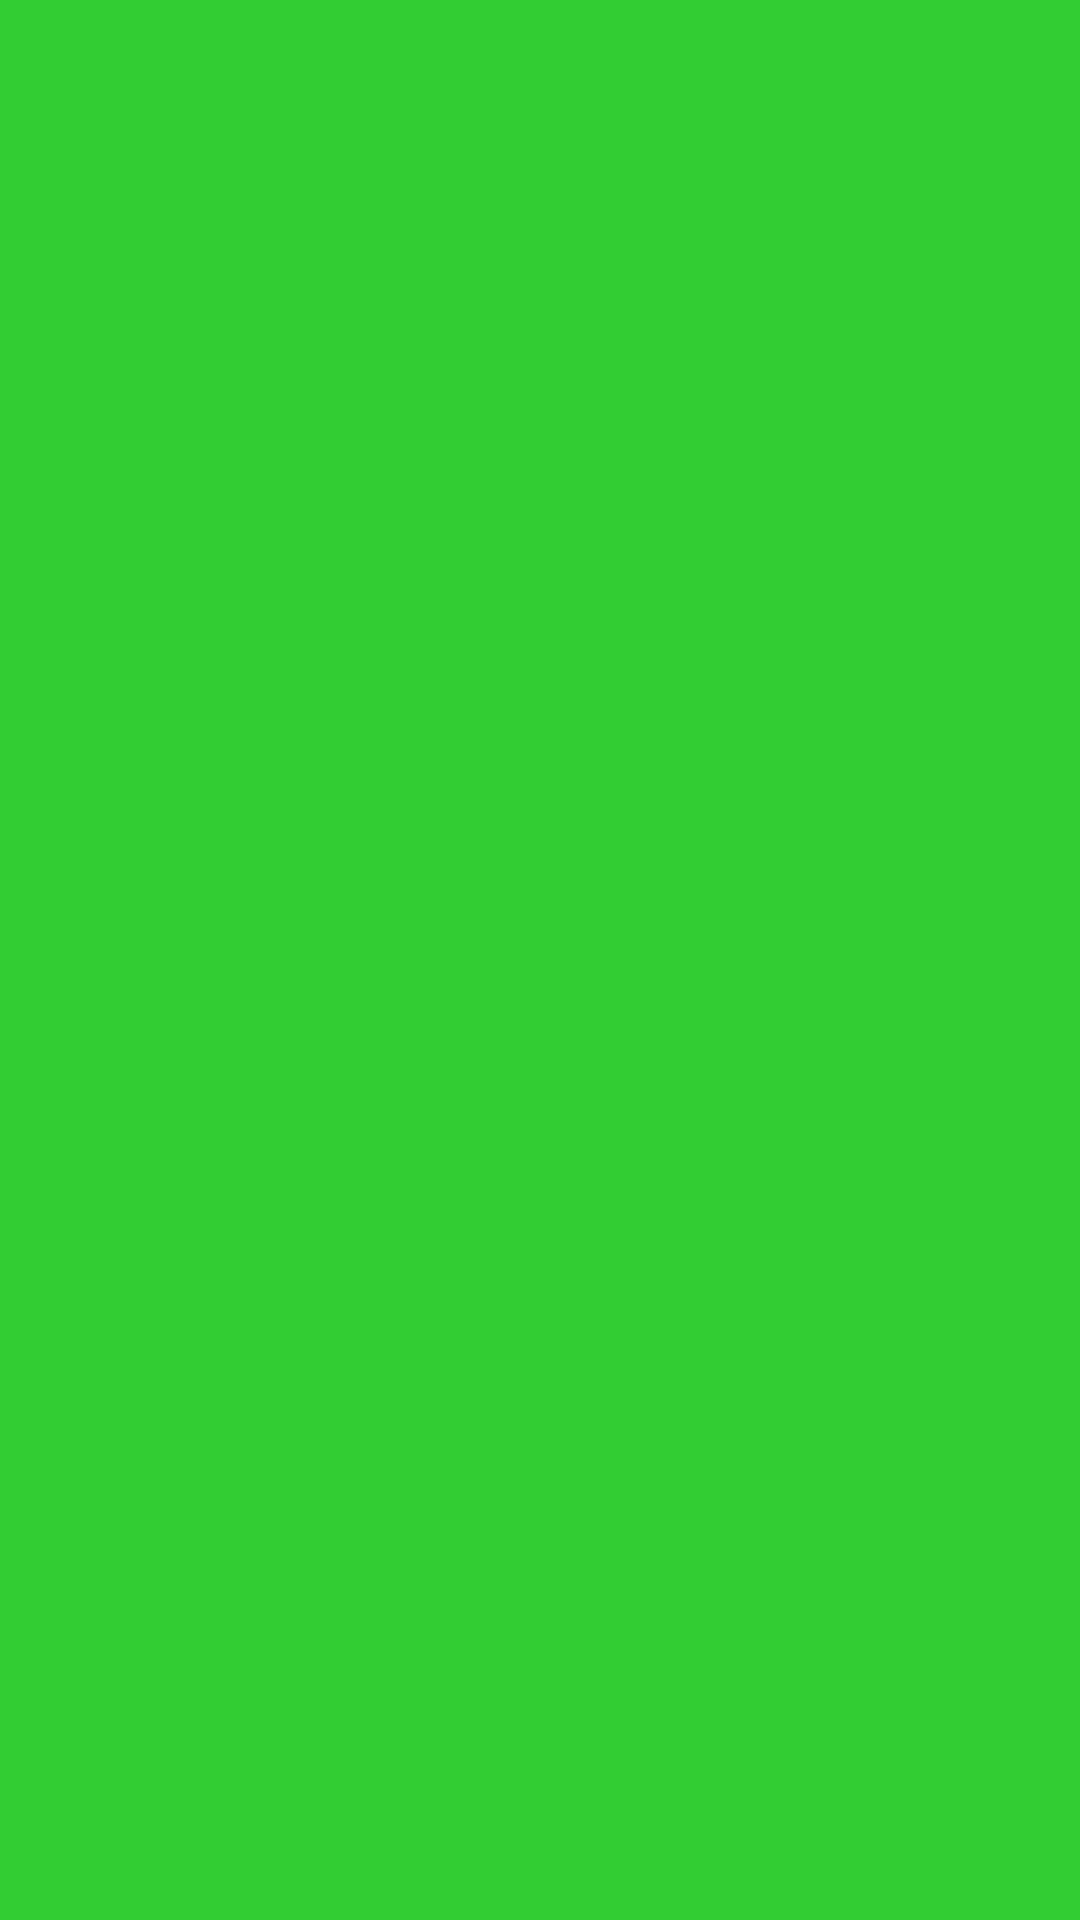 1080x1920 Lime Green Solid Color Background